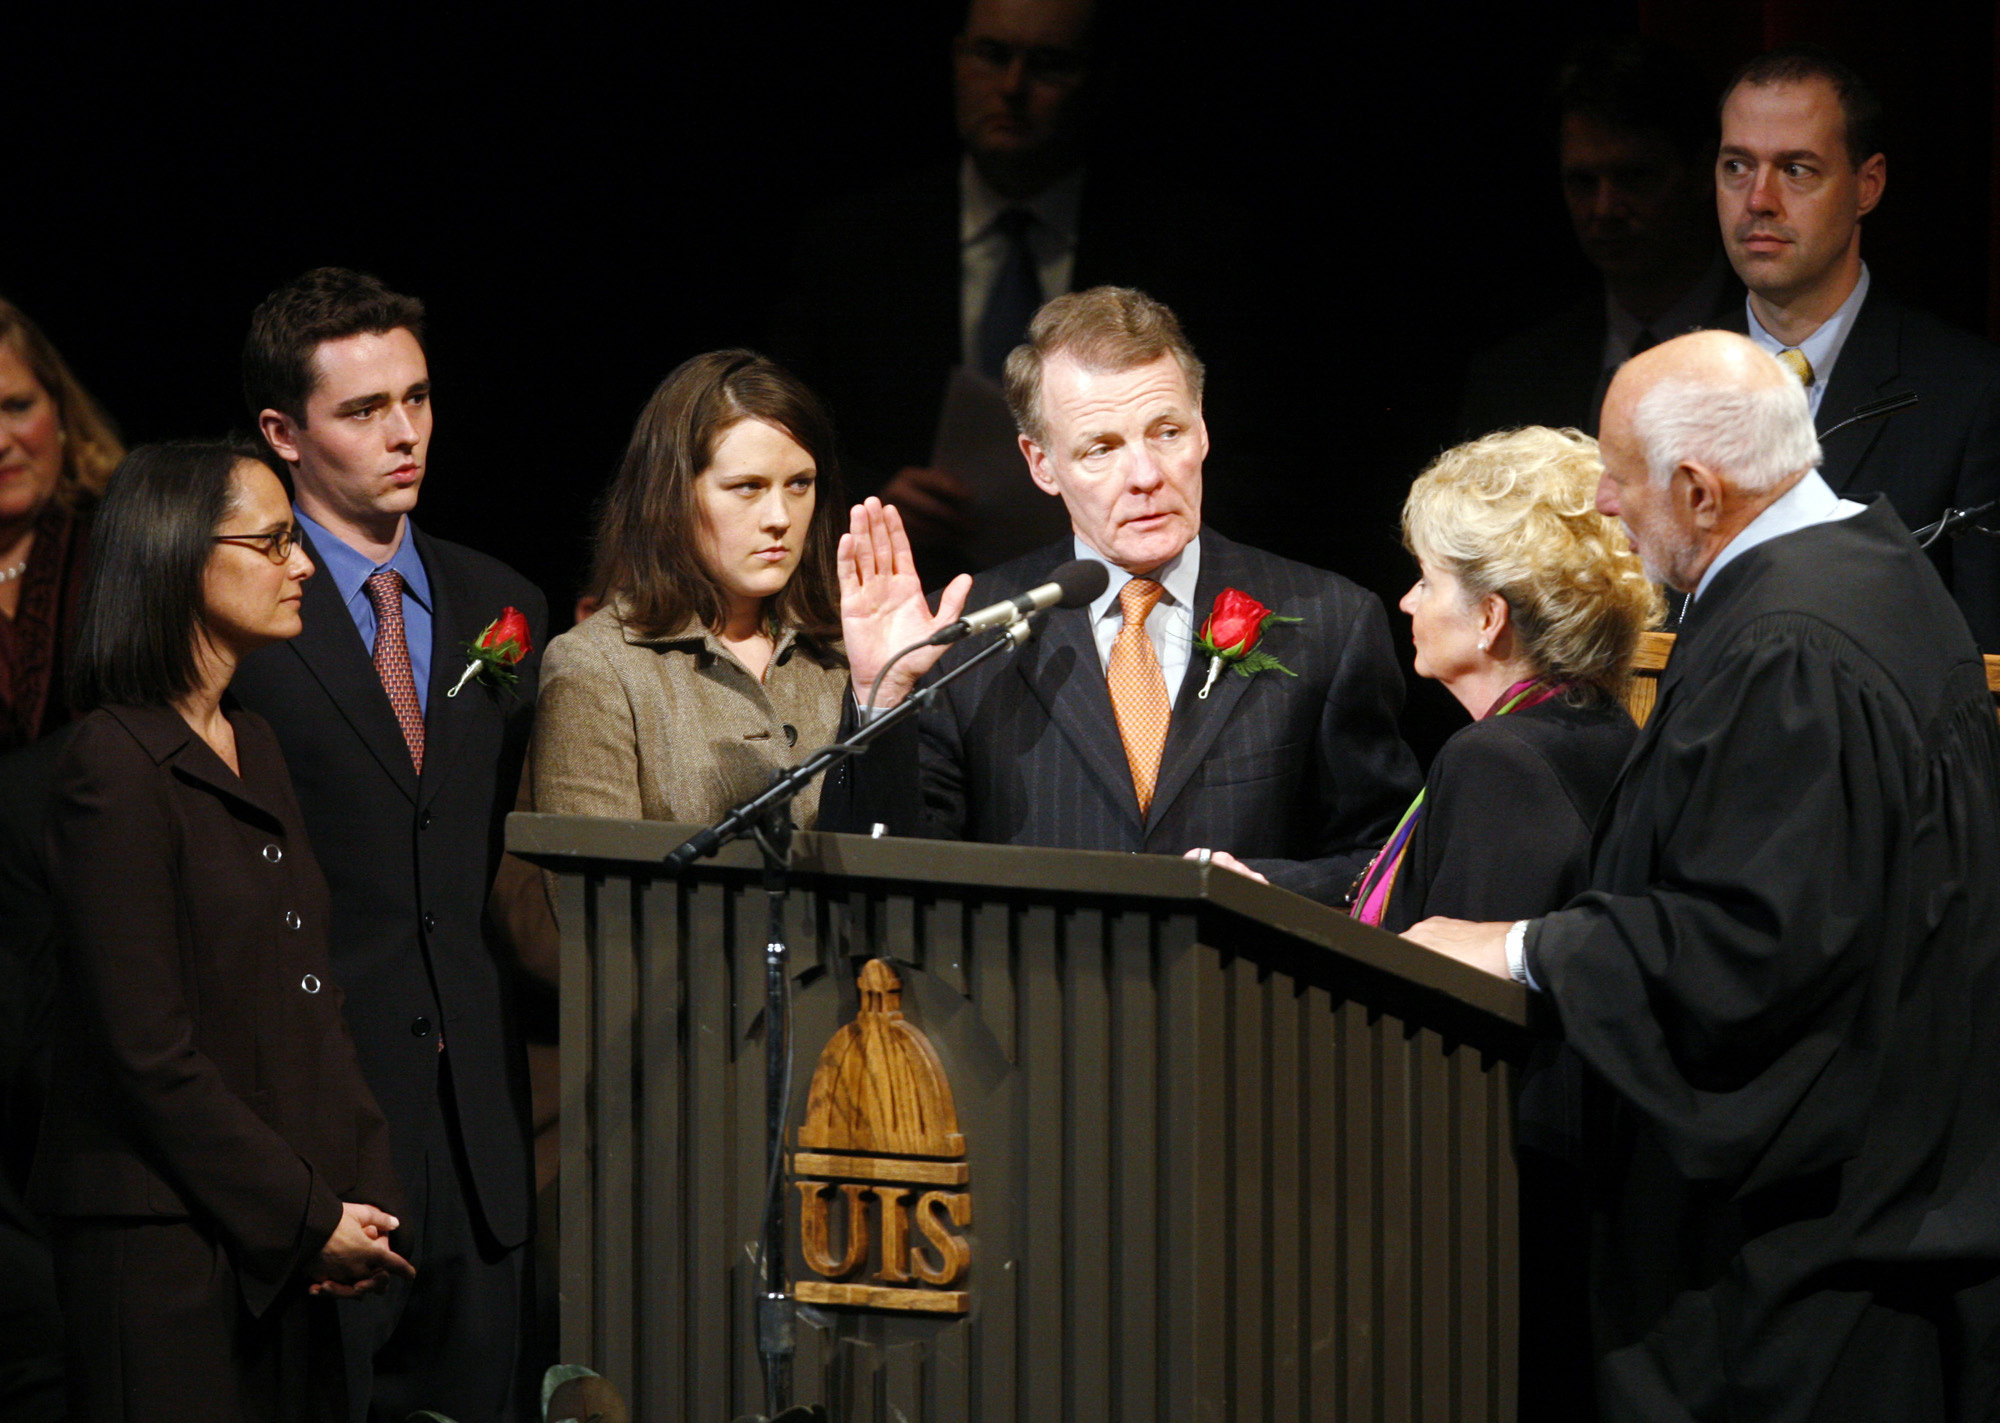 Michael Madigan is sworn in as Illinois House speaker in 2007. With him: his family, including son Andrew Madigan (left).